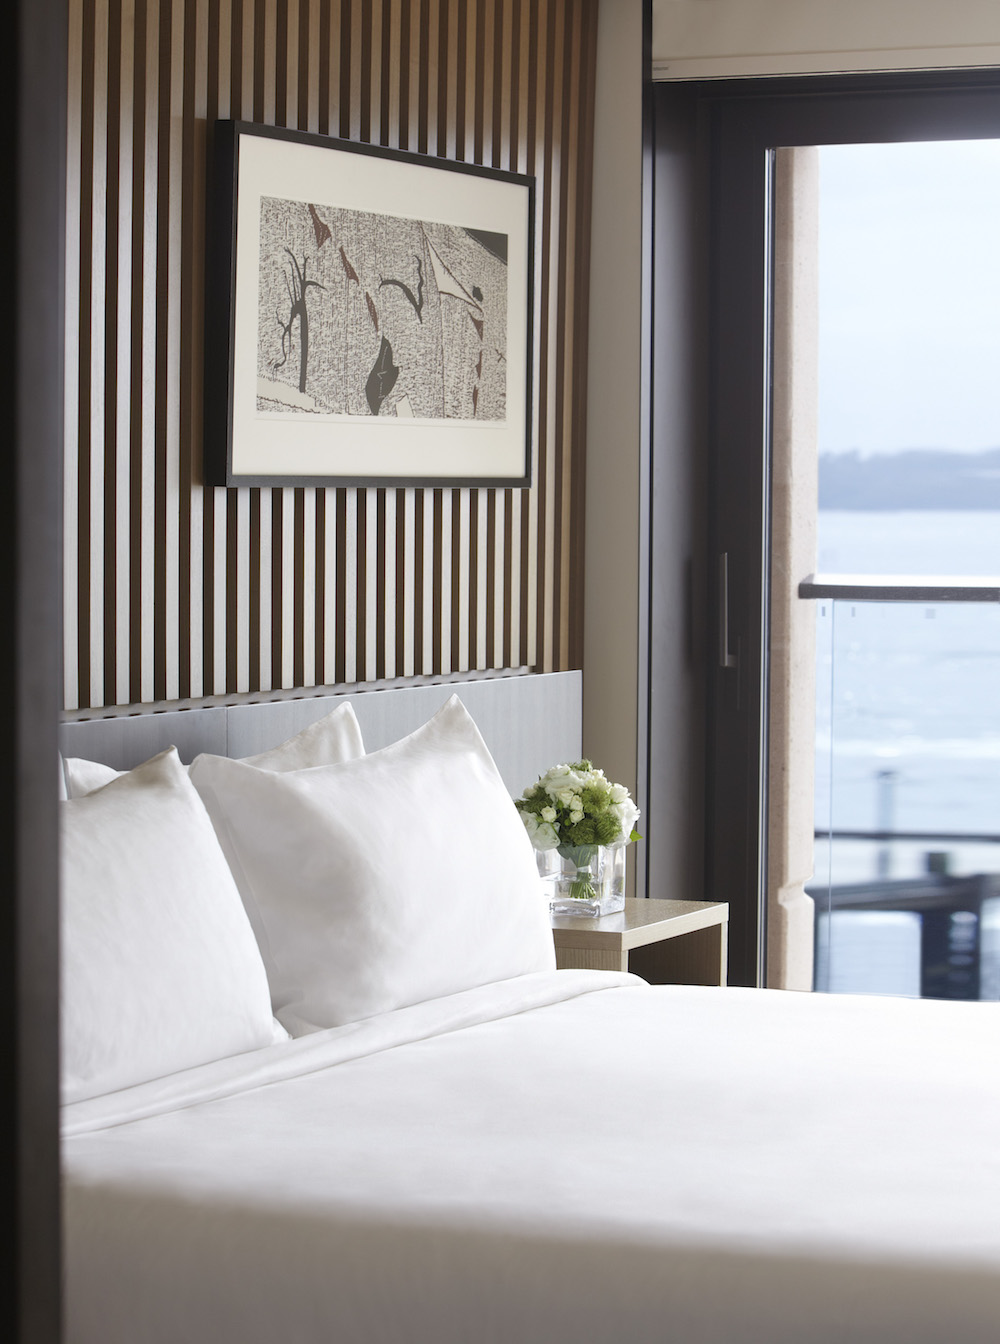 Harbourside King Opera Deluxe Room at Park Hyatt Sydney Hotel